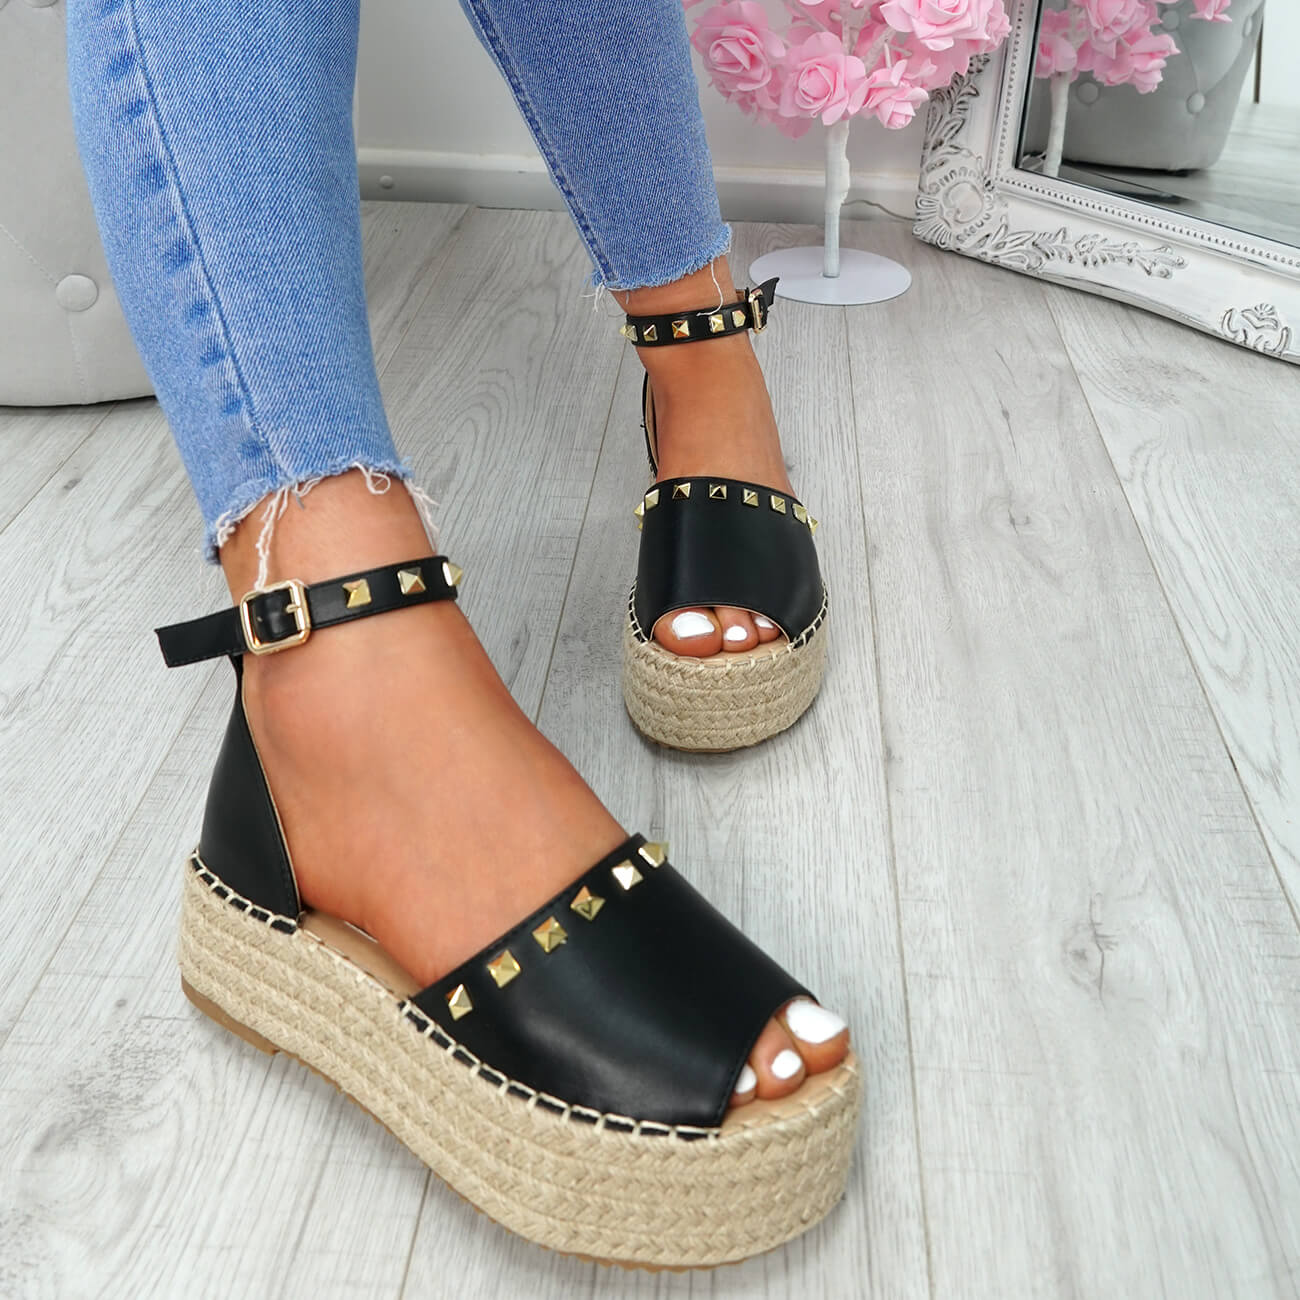 WOMENS-LADIES-ROCK-STUDS-ESPADRILLE-FLATFORM-PLATFORM-SANDALS-CASUAL-SHOES-SIZE thumbnail 8